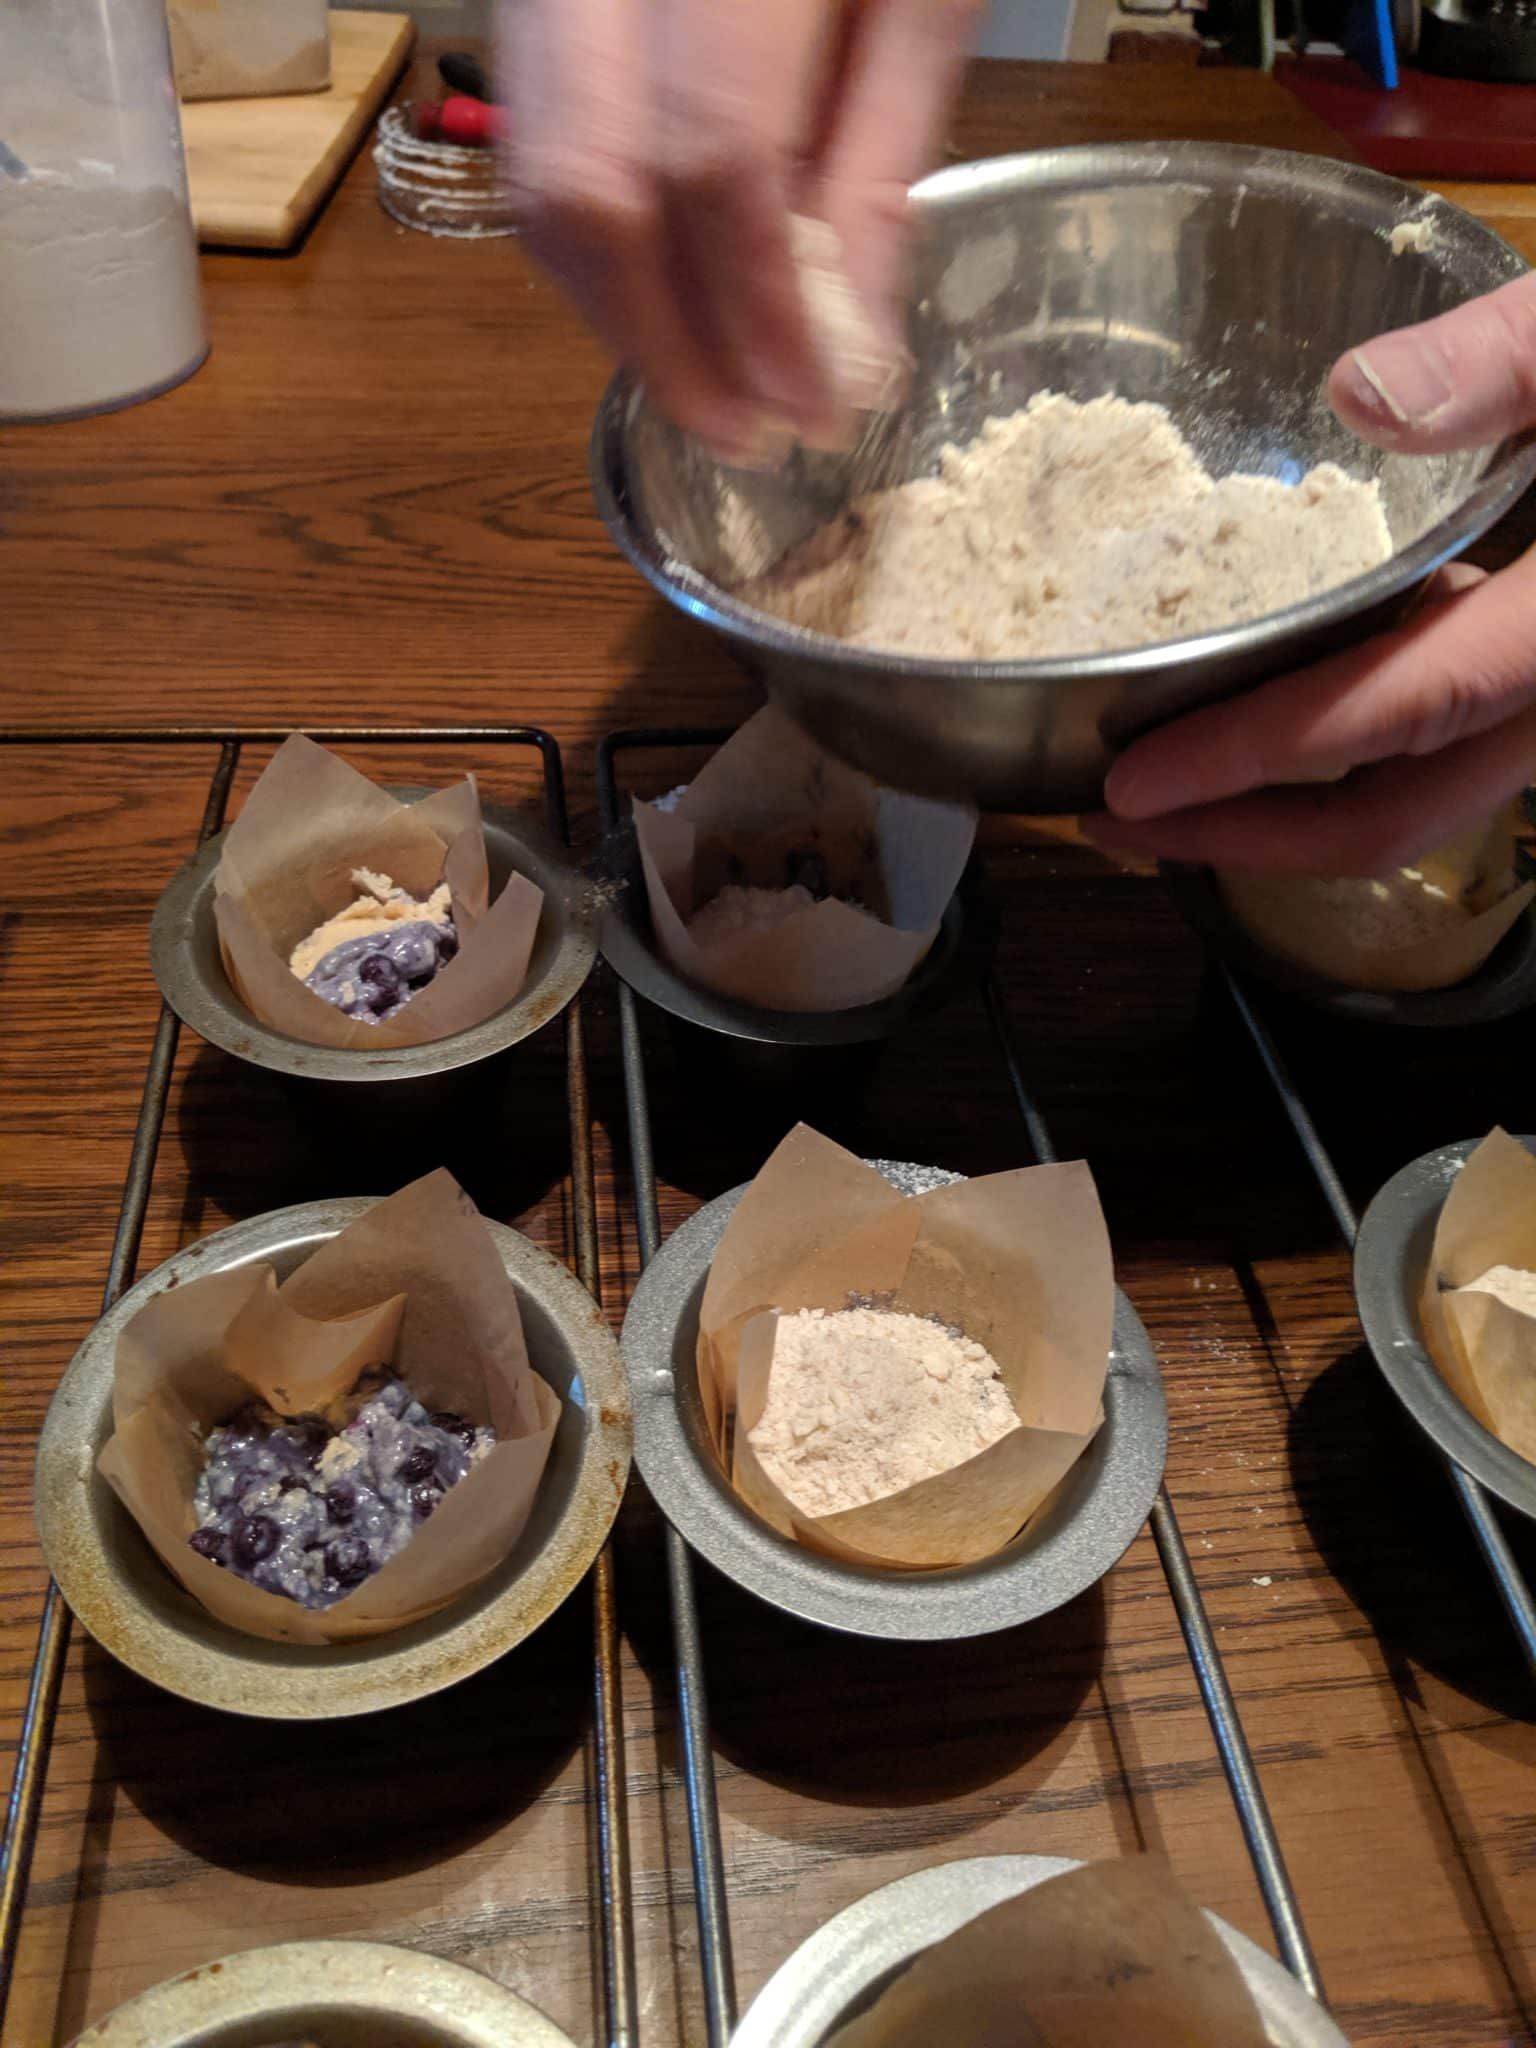 muffin batter in tins with crumb topping being added